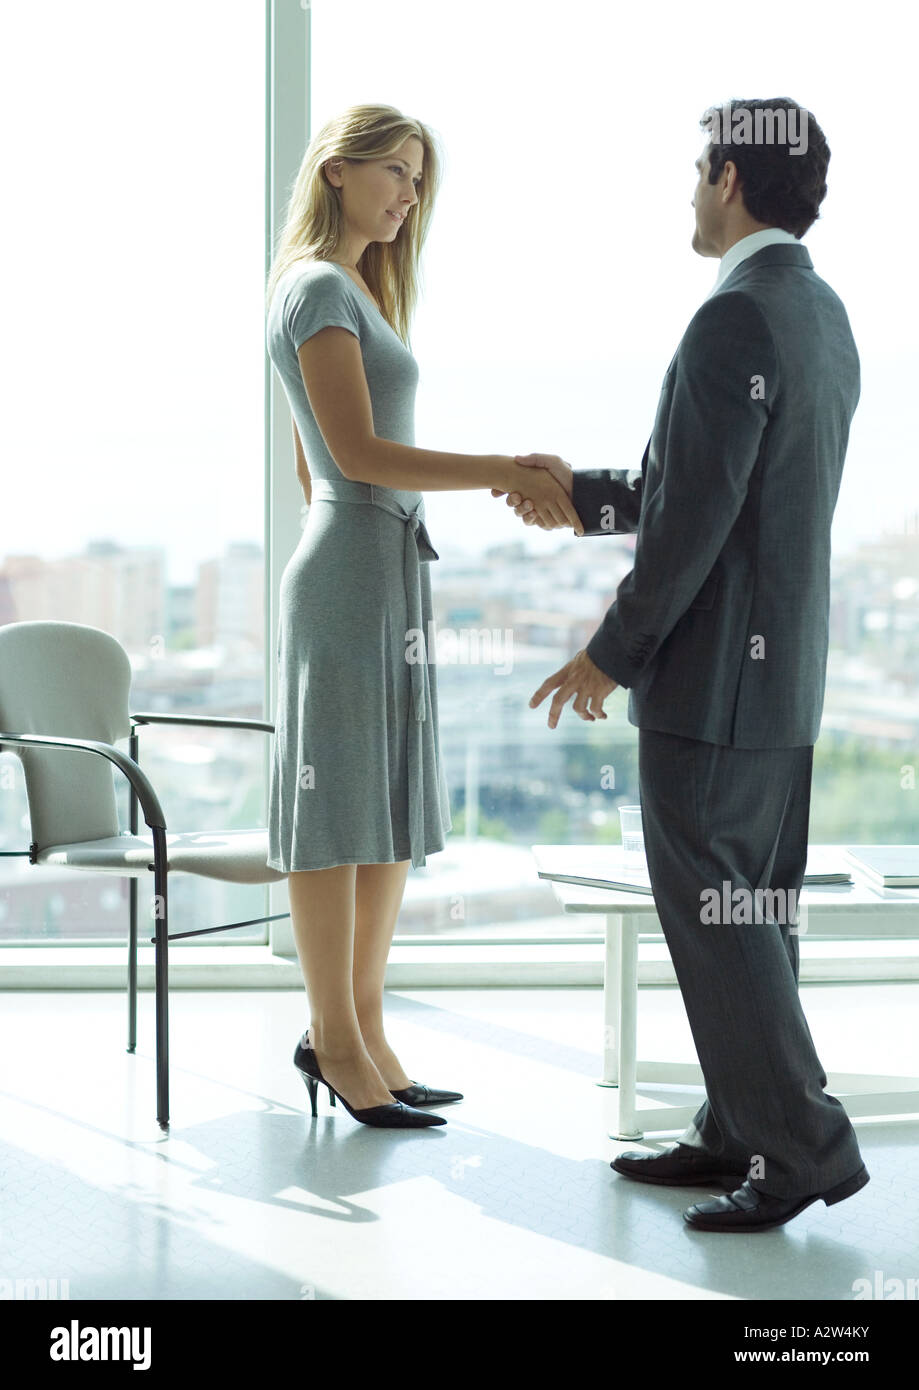 Businessman shaking hands with woman in lobby - Stock Image